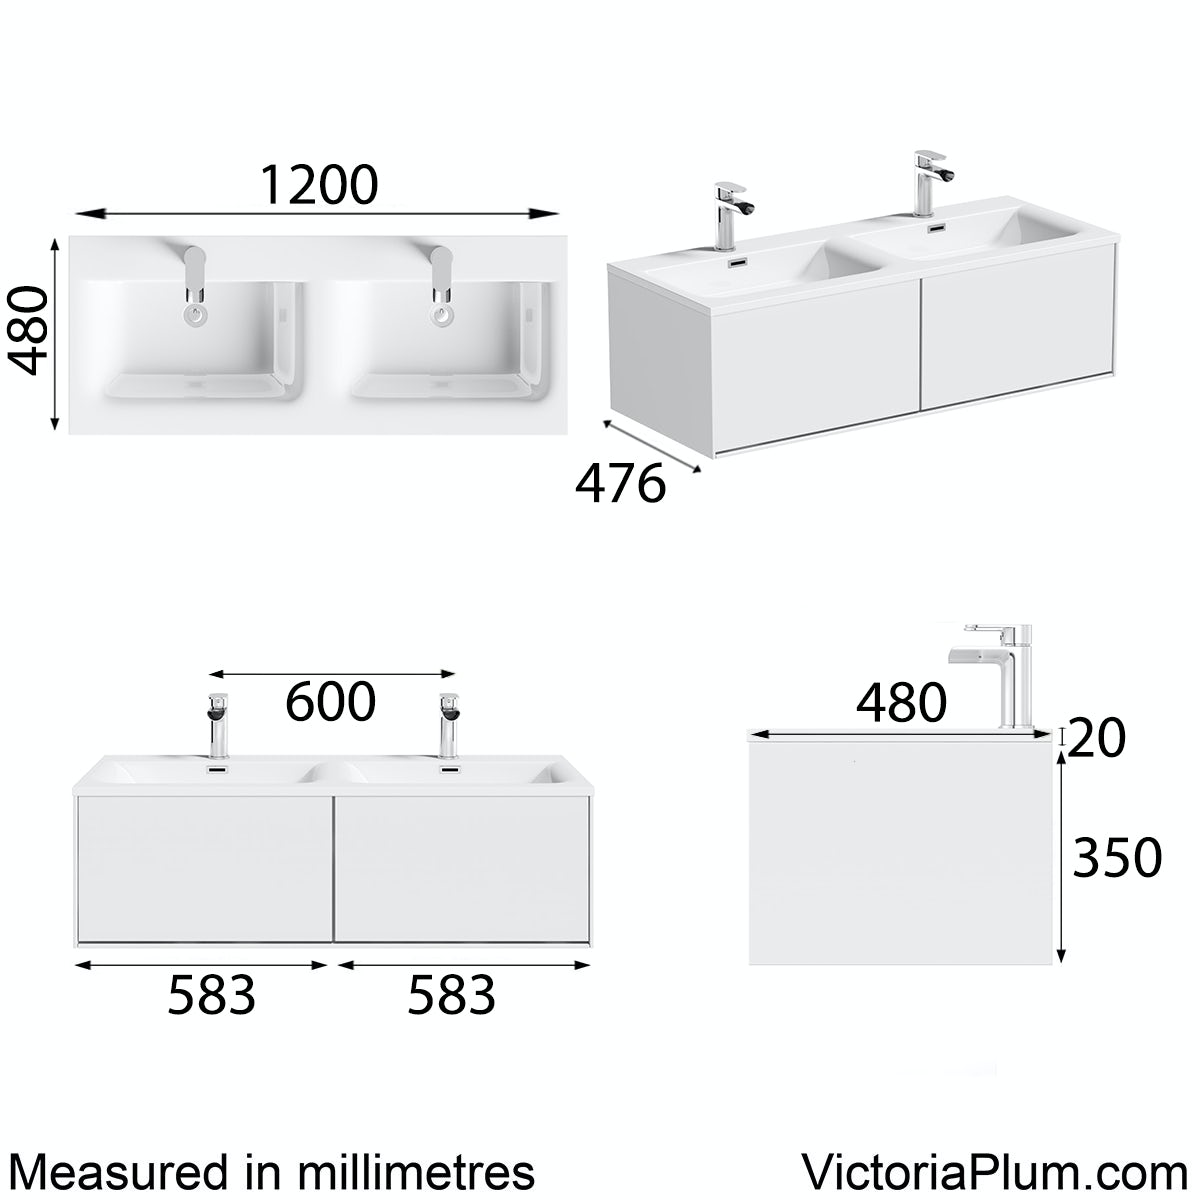 Dimensions for Mode Burton white wall hung double basin vanity unit 1200mm